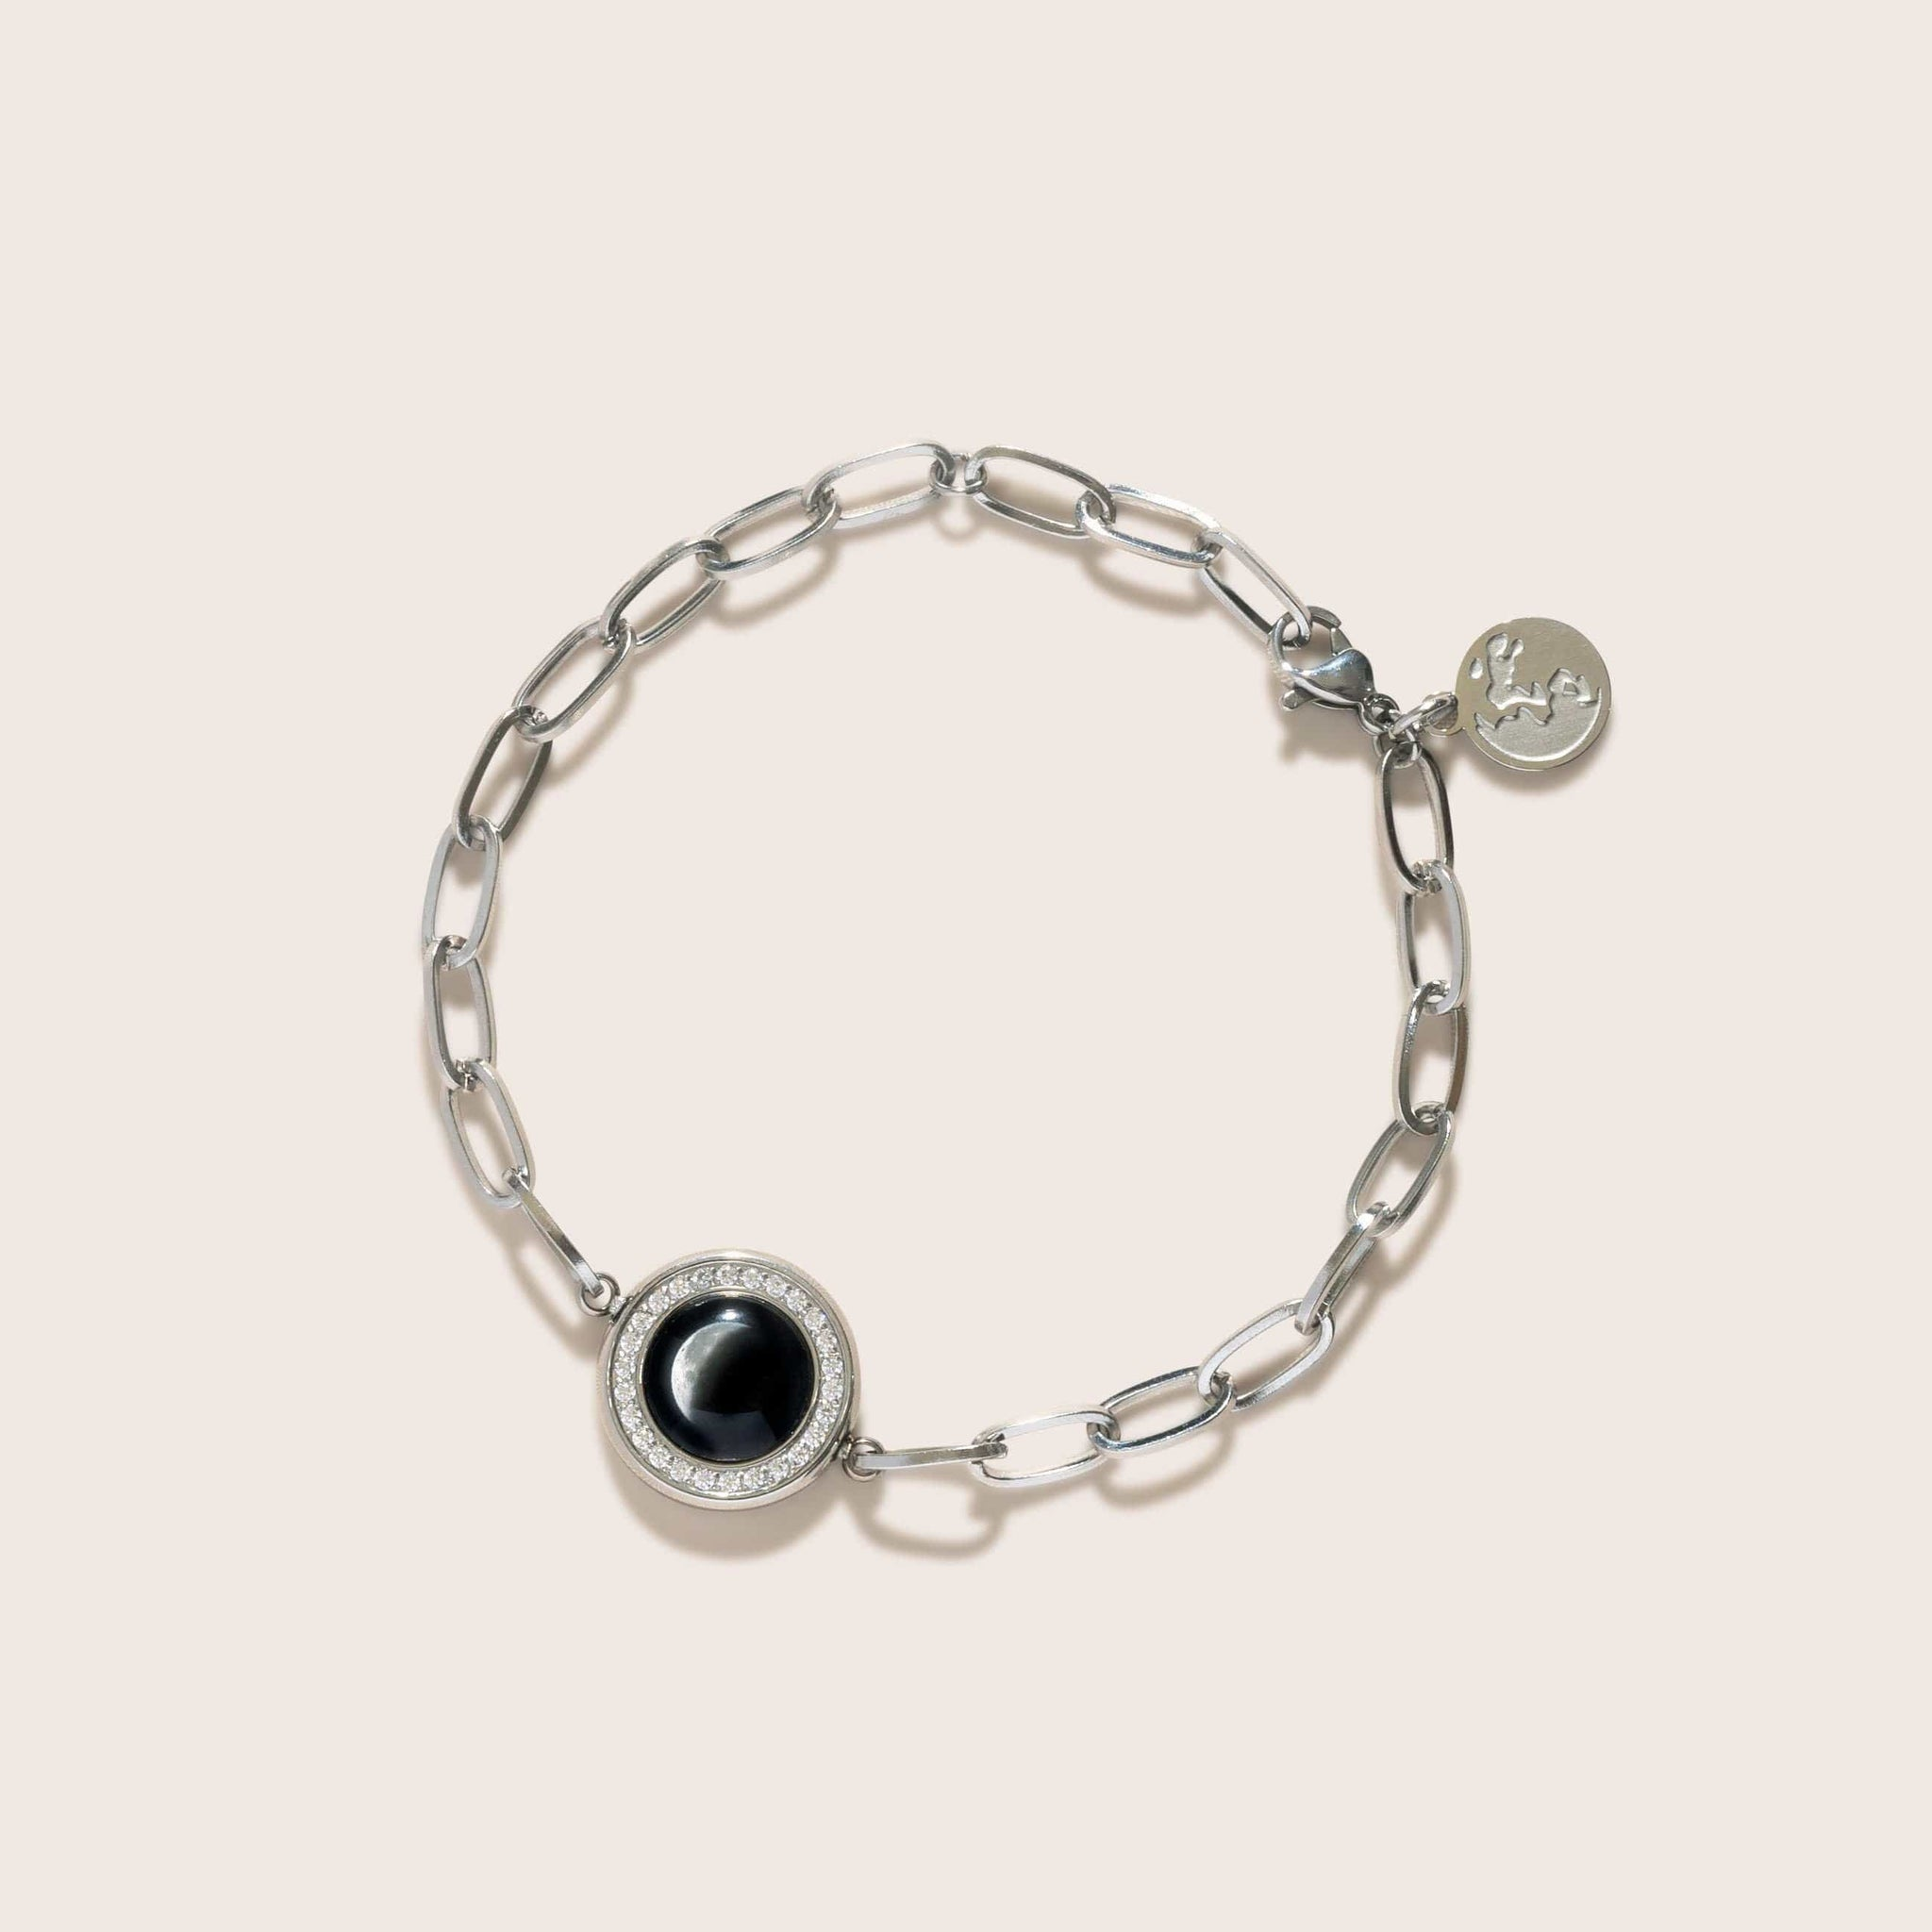 The Asterism Link Bracelet in Stainless Steel